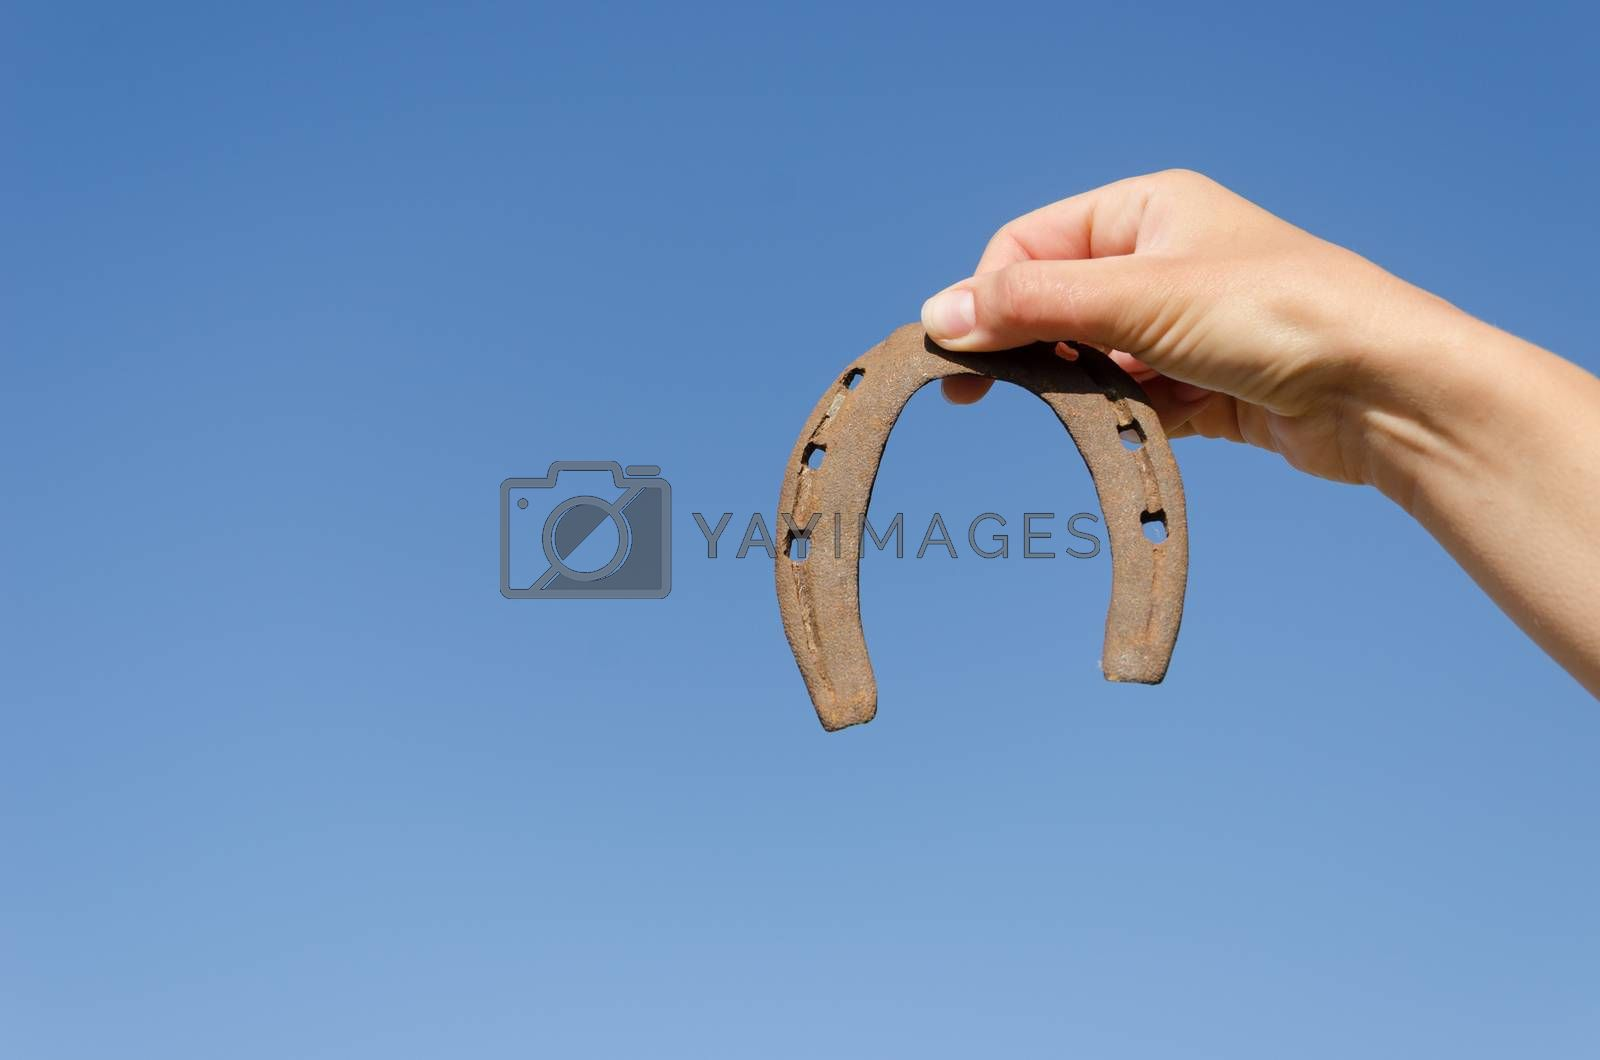 small rusty iron horseshoe in woman hand on blue sky bckground